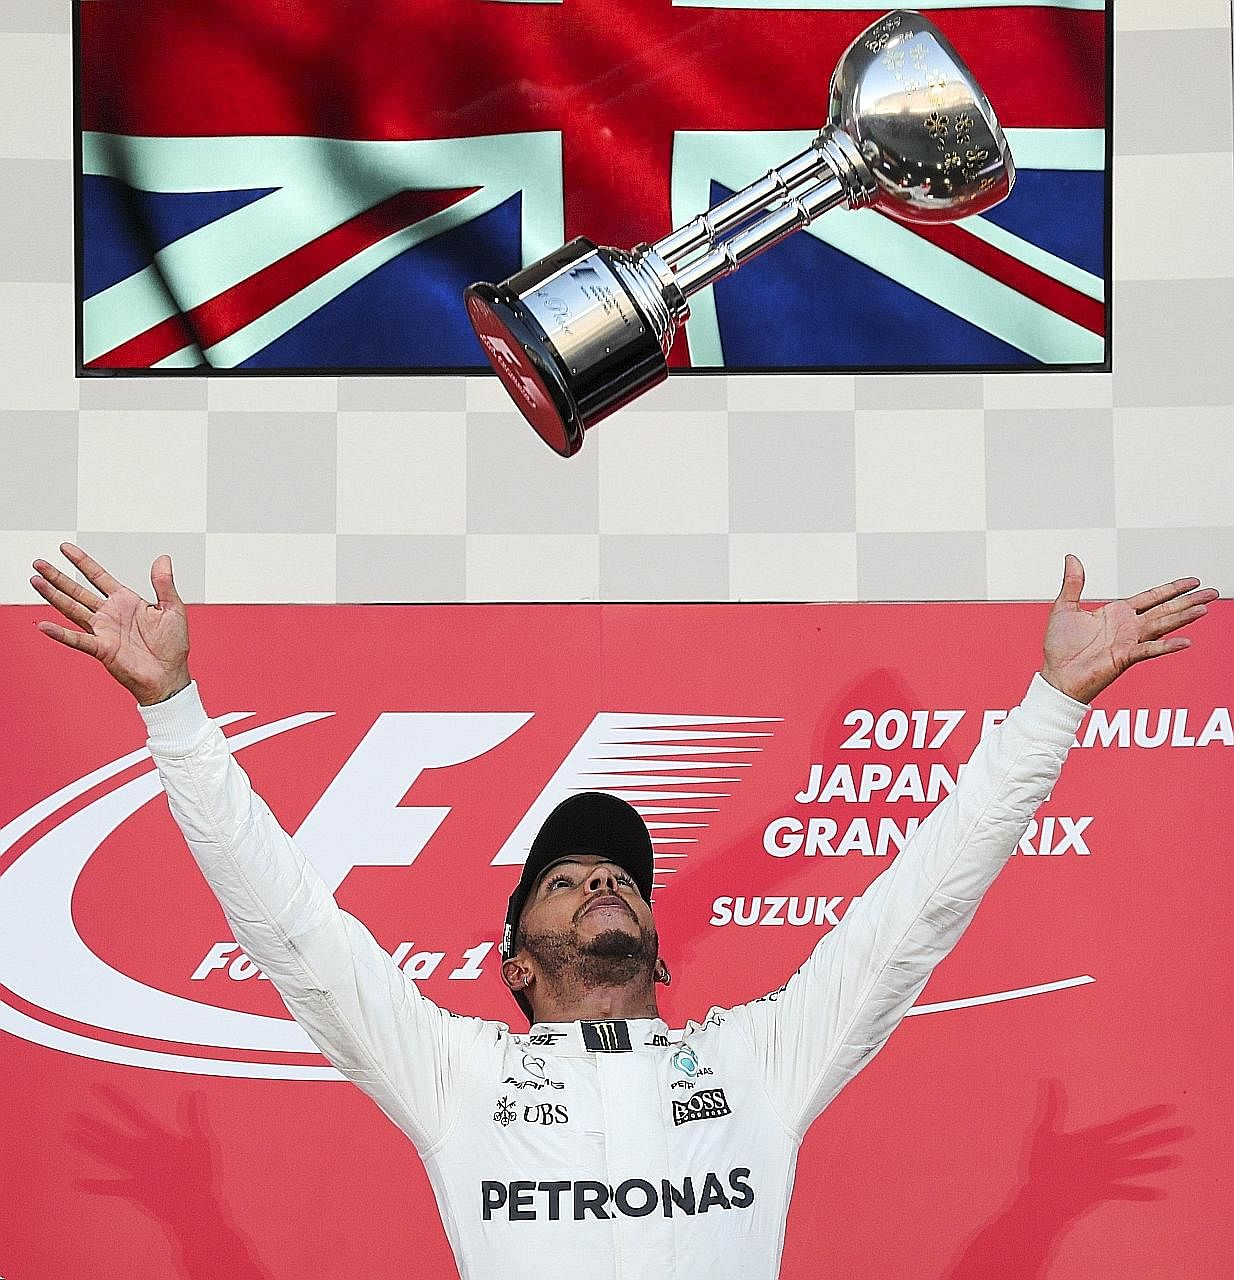 Mercedes' Lewis Hamilton celebrating on the podium after winning the Japanese Grand Prix at the Suzuka Circuit. The Briton has a commanding 59-point lead over his nearest rival.